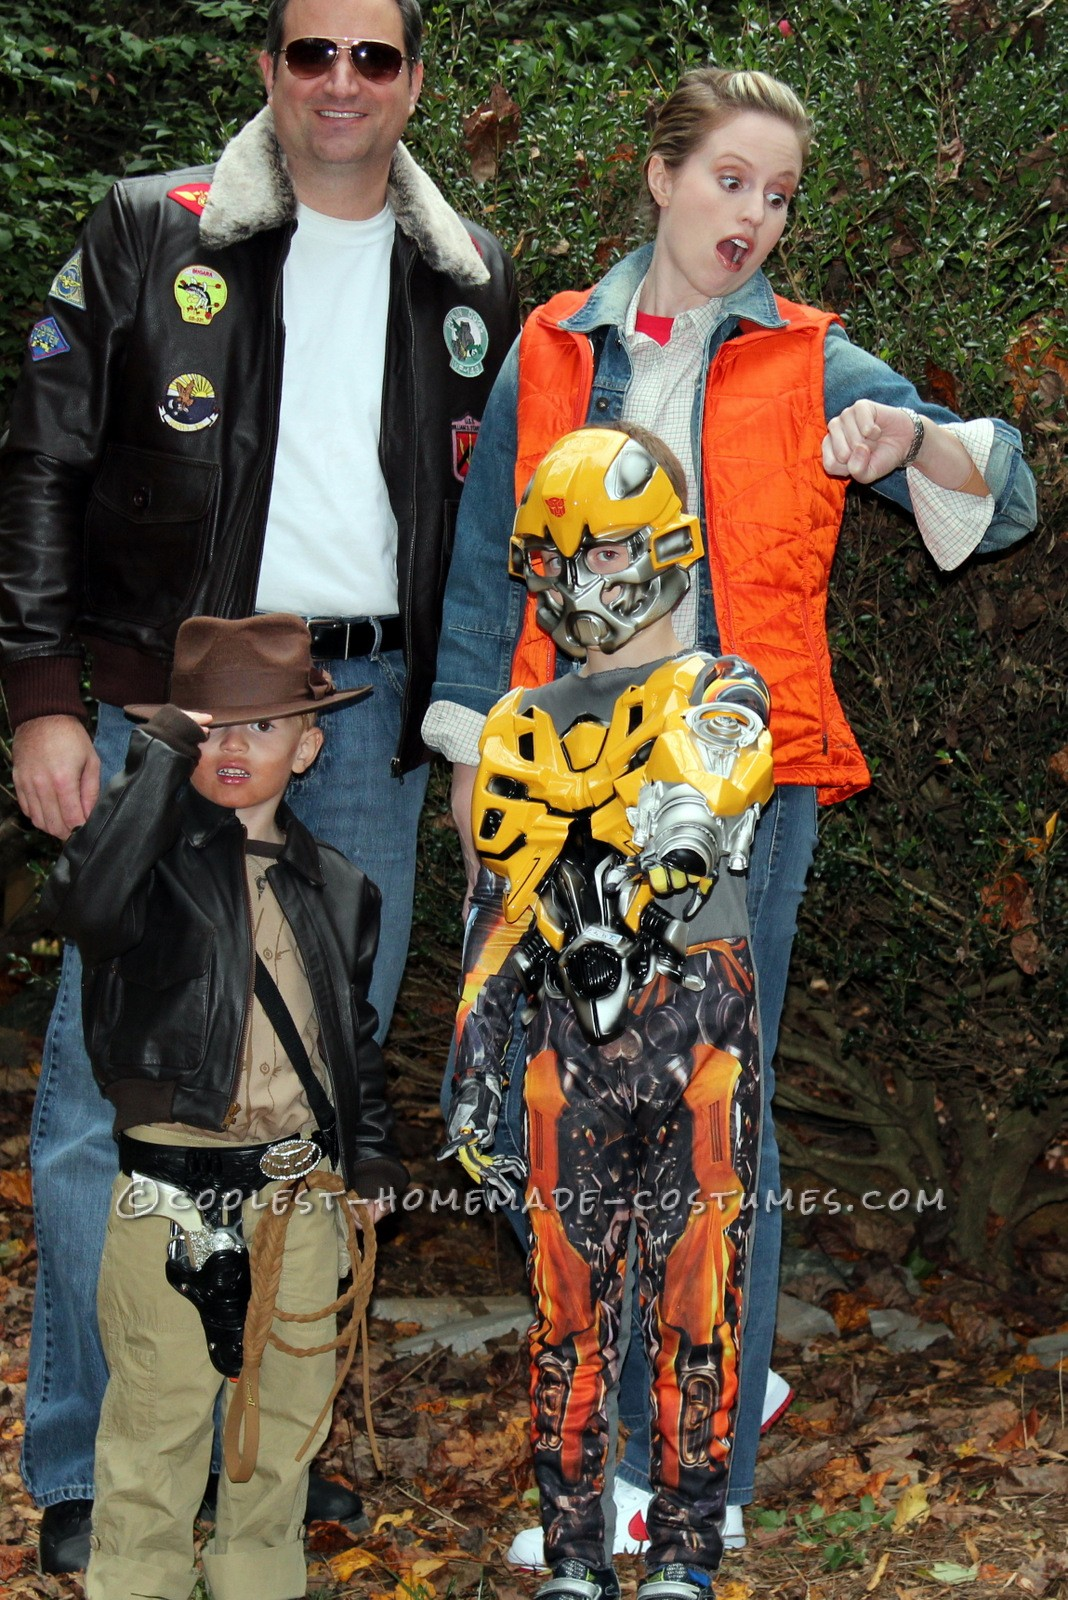 Coolest Homemade Family Costume 1980's Movie Characters